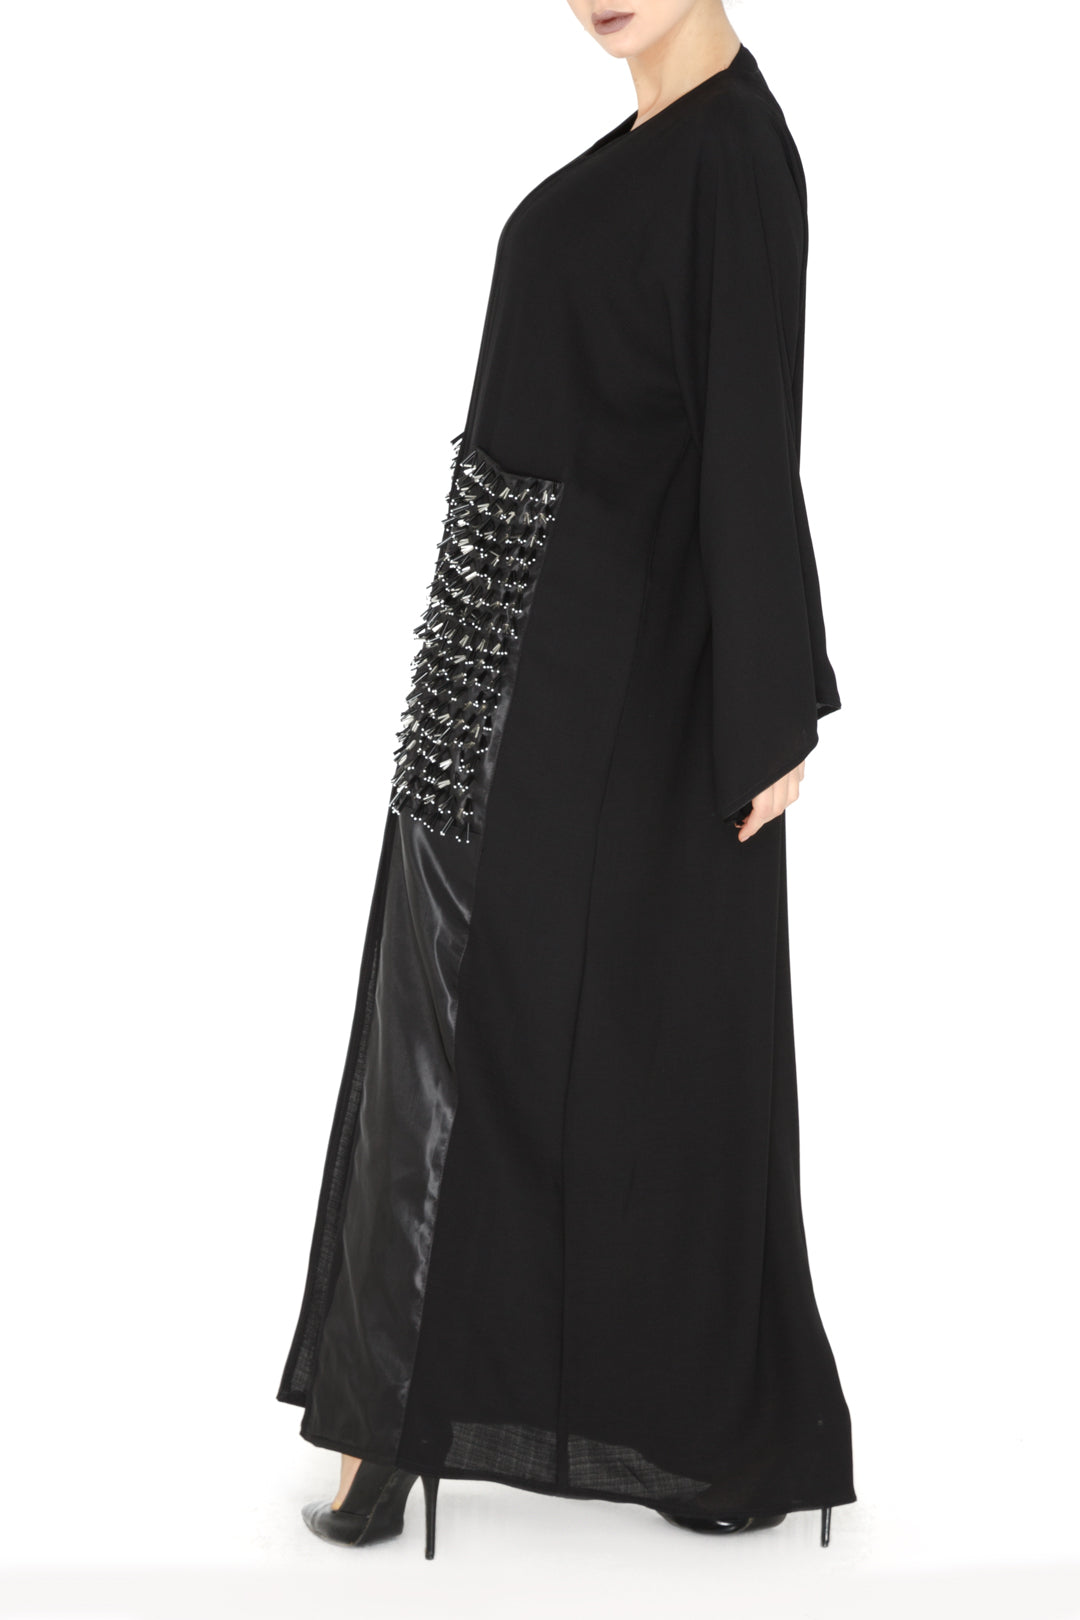 Large Pocket Embellishment Abaya